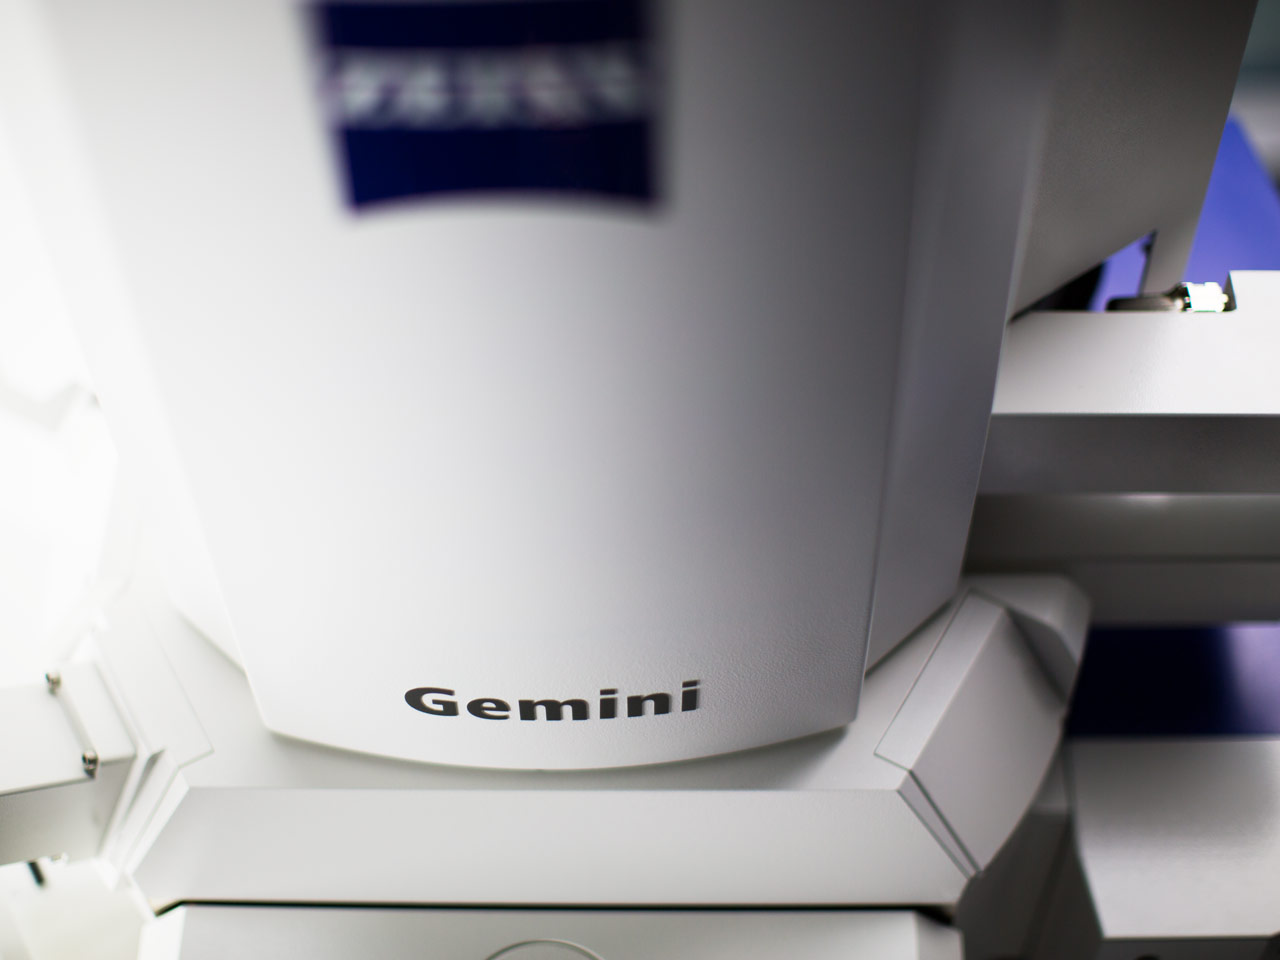 ZEISS Crossbeam mit Gemini-Optik